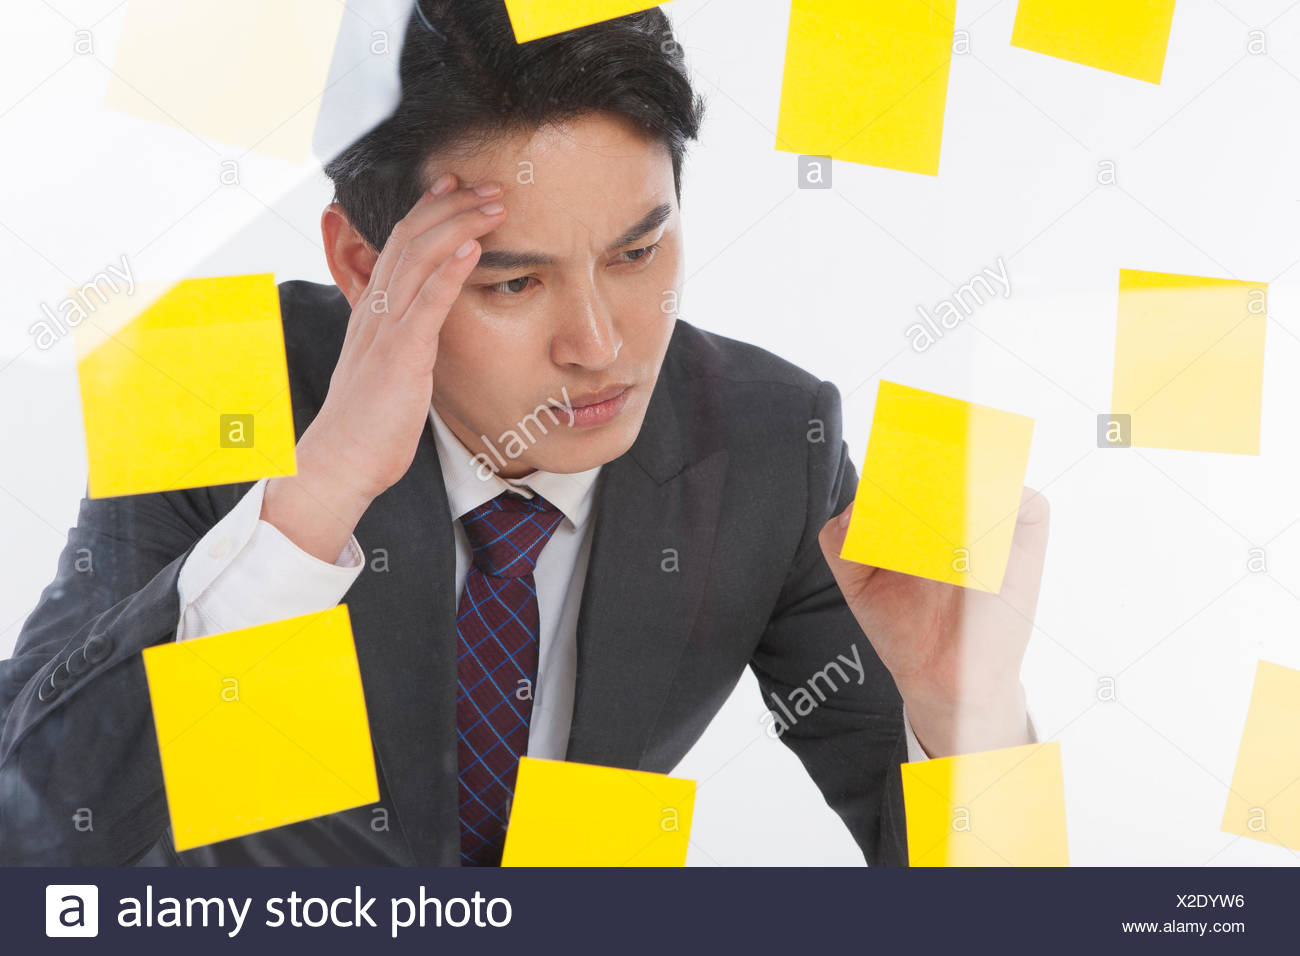 Portrait of stressful businessman with lots of post-it - Stock Image